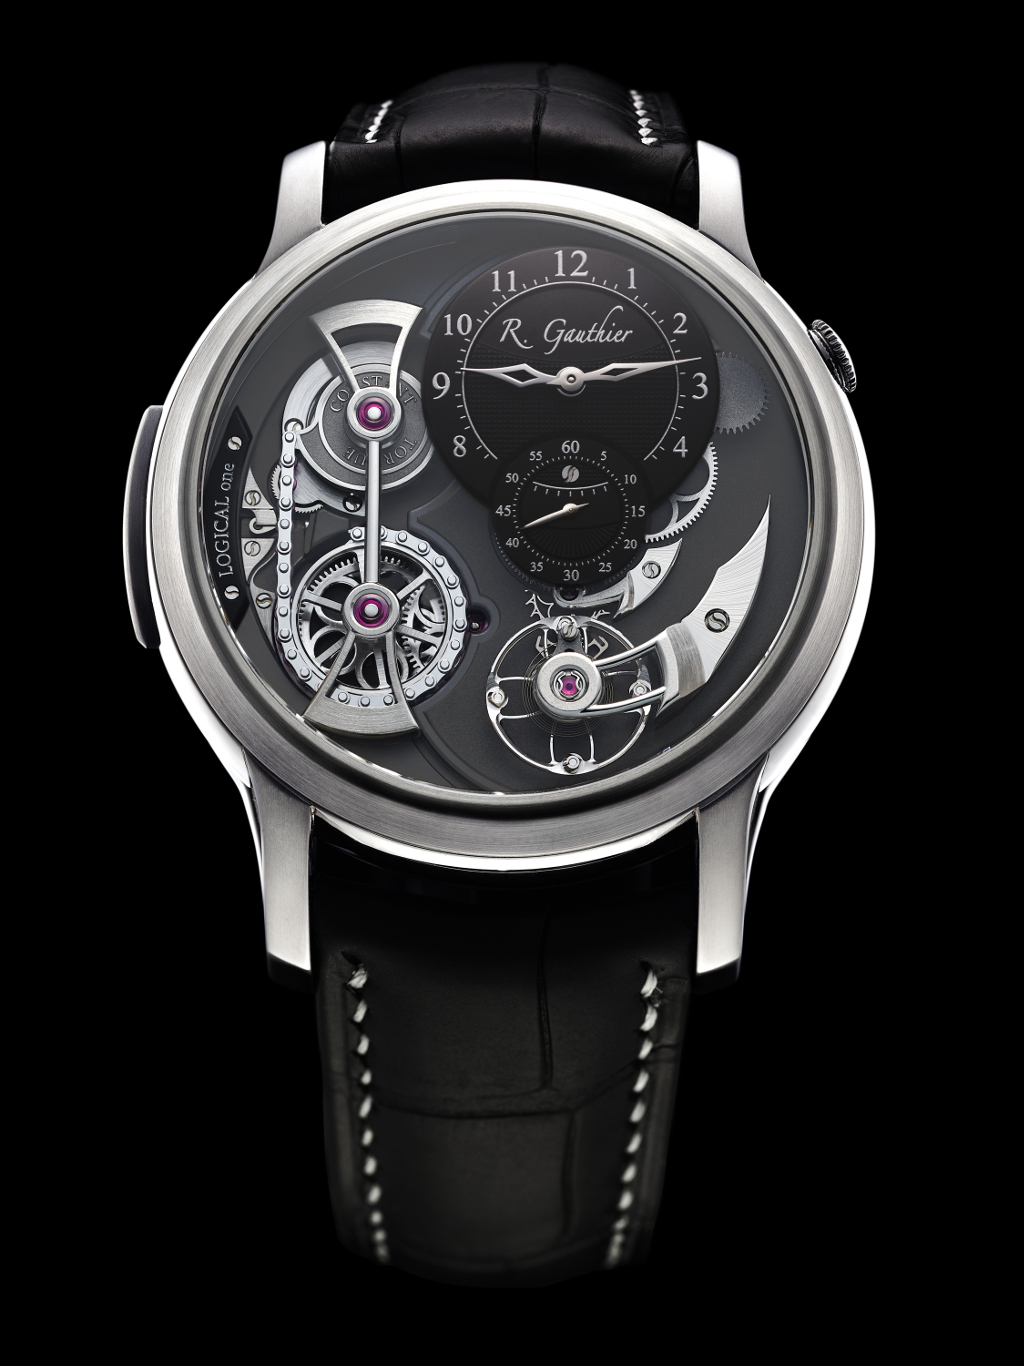 Romain_Gauthier_Logical_One_natural_titanium_clous_de_Paris_dial-1.jpg